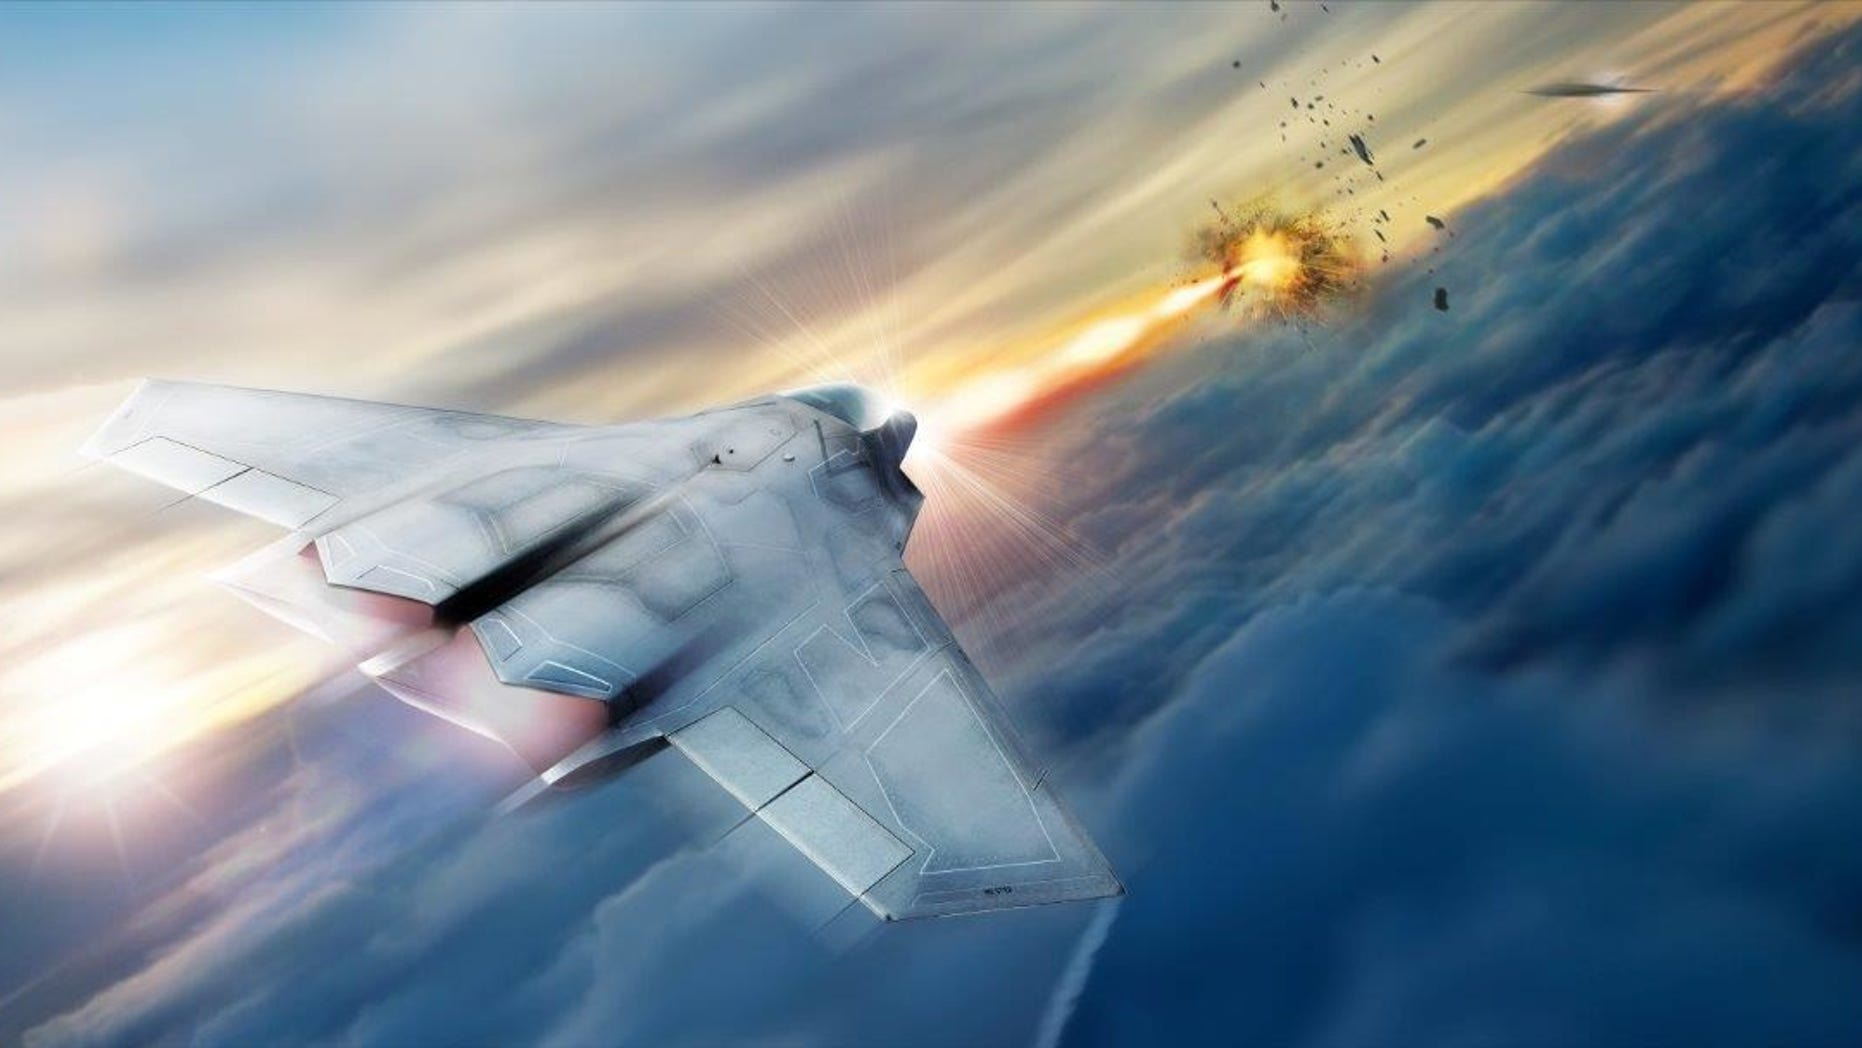 Artist's impression of high energy laser system.